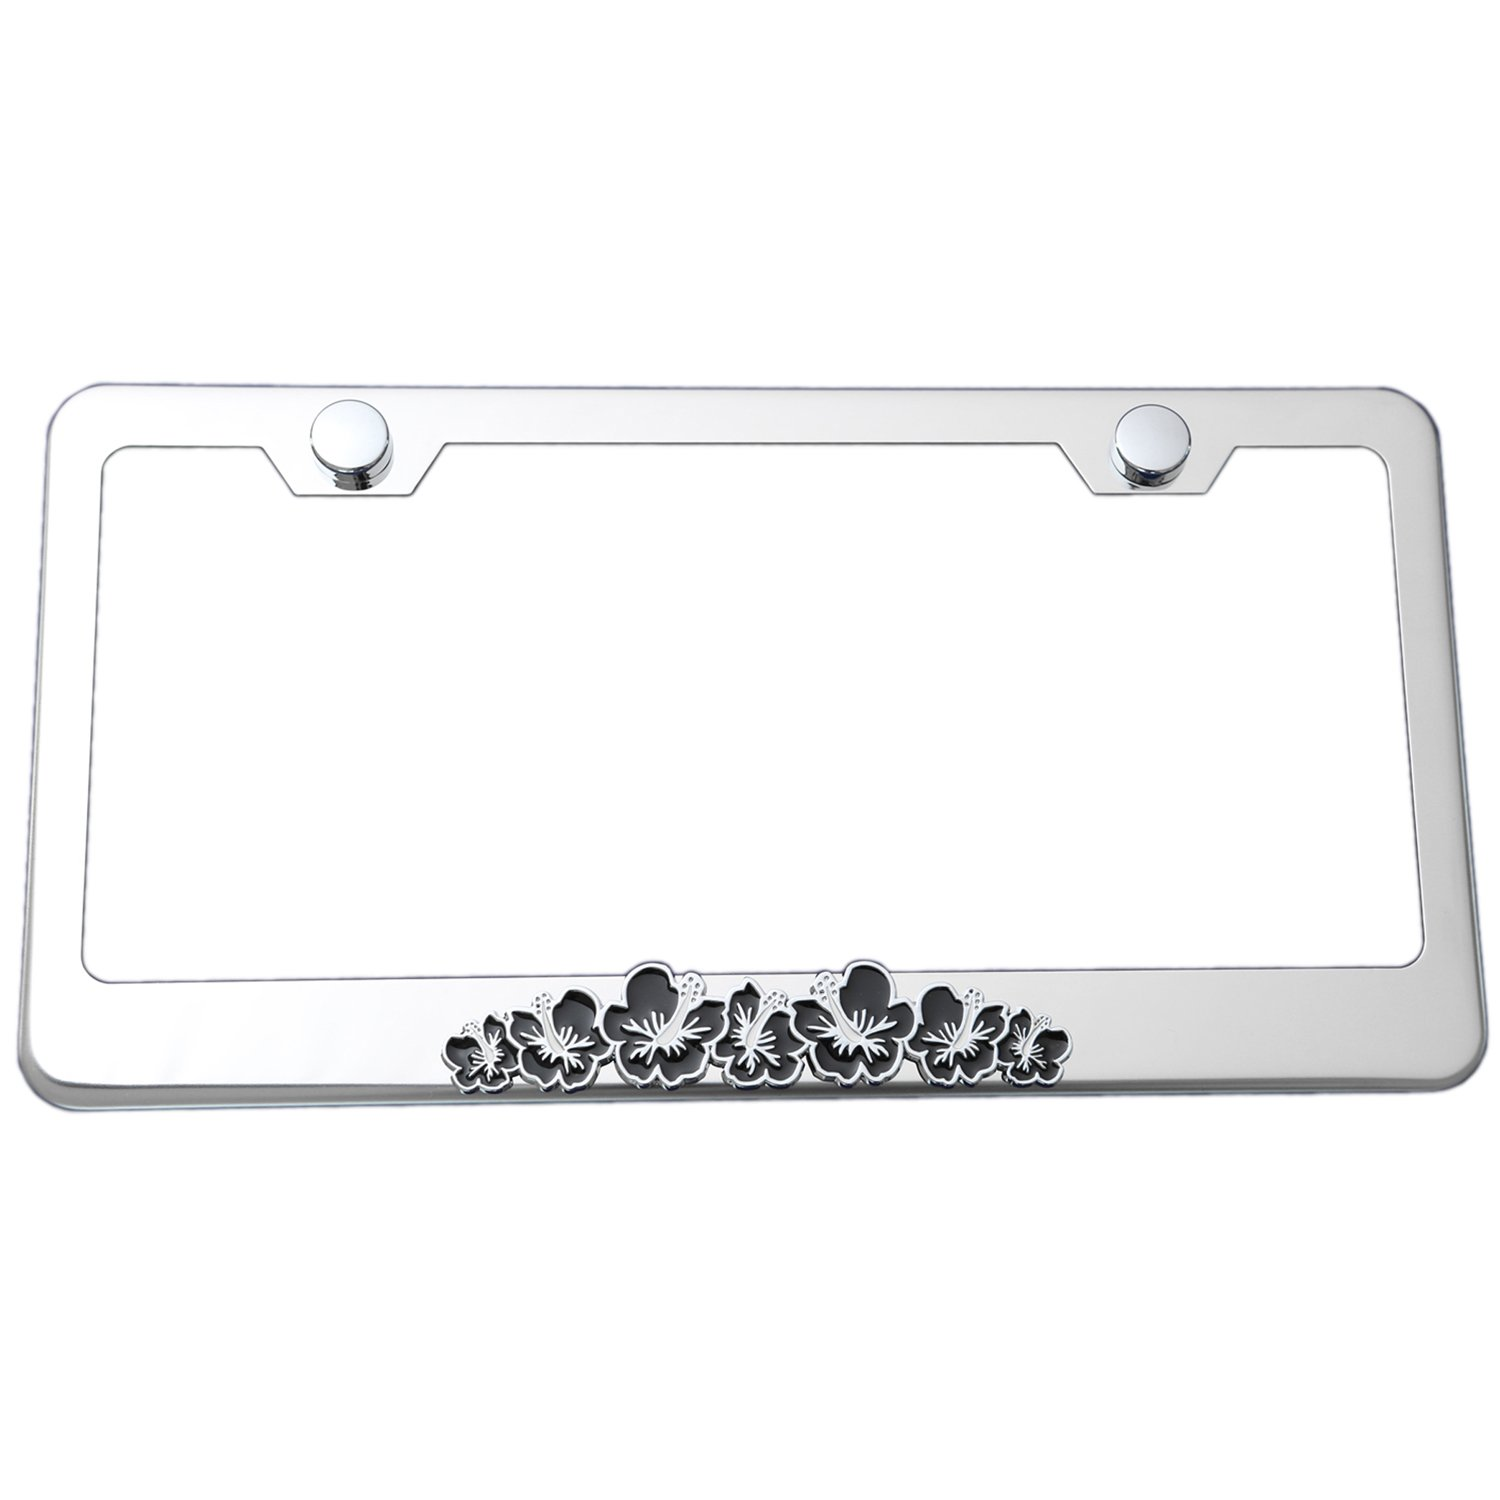 Hibiscus 3d Flower Emblem Stainless Steel License Plate Frame